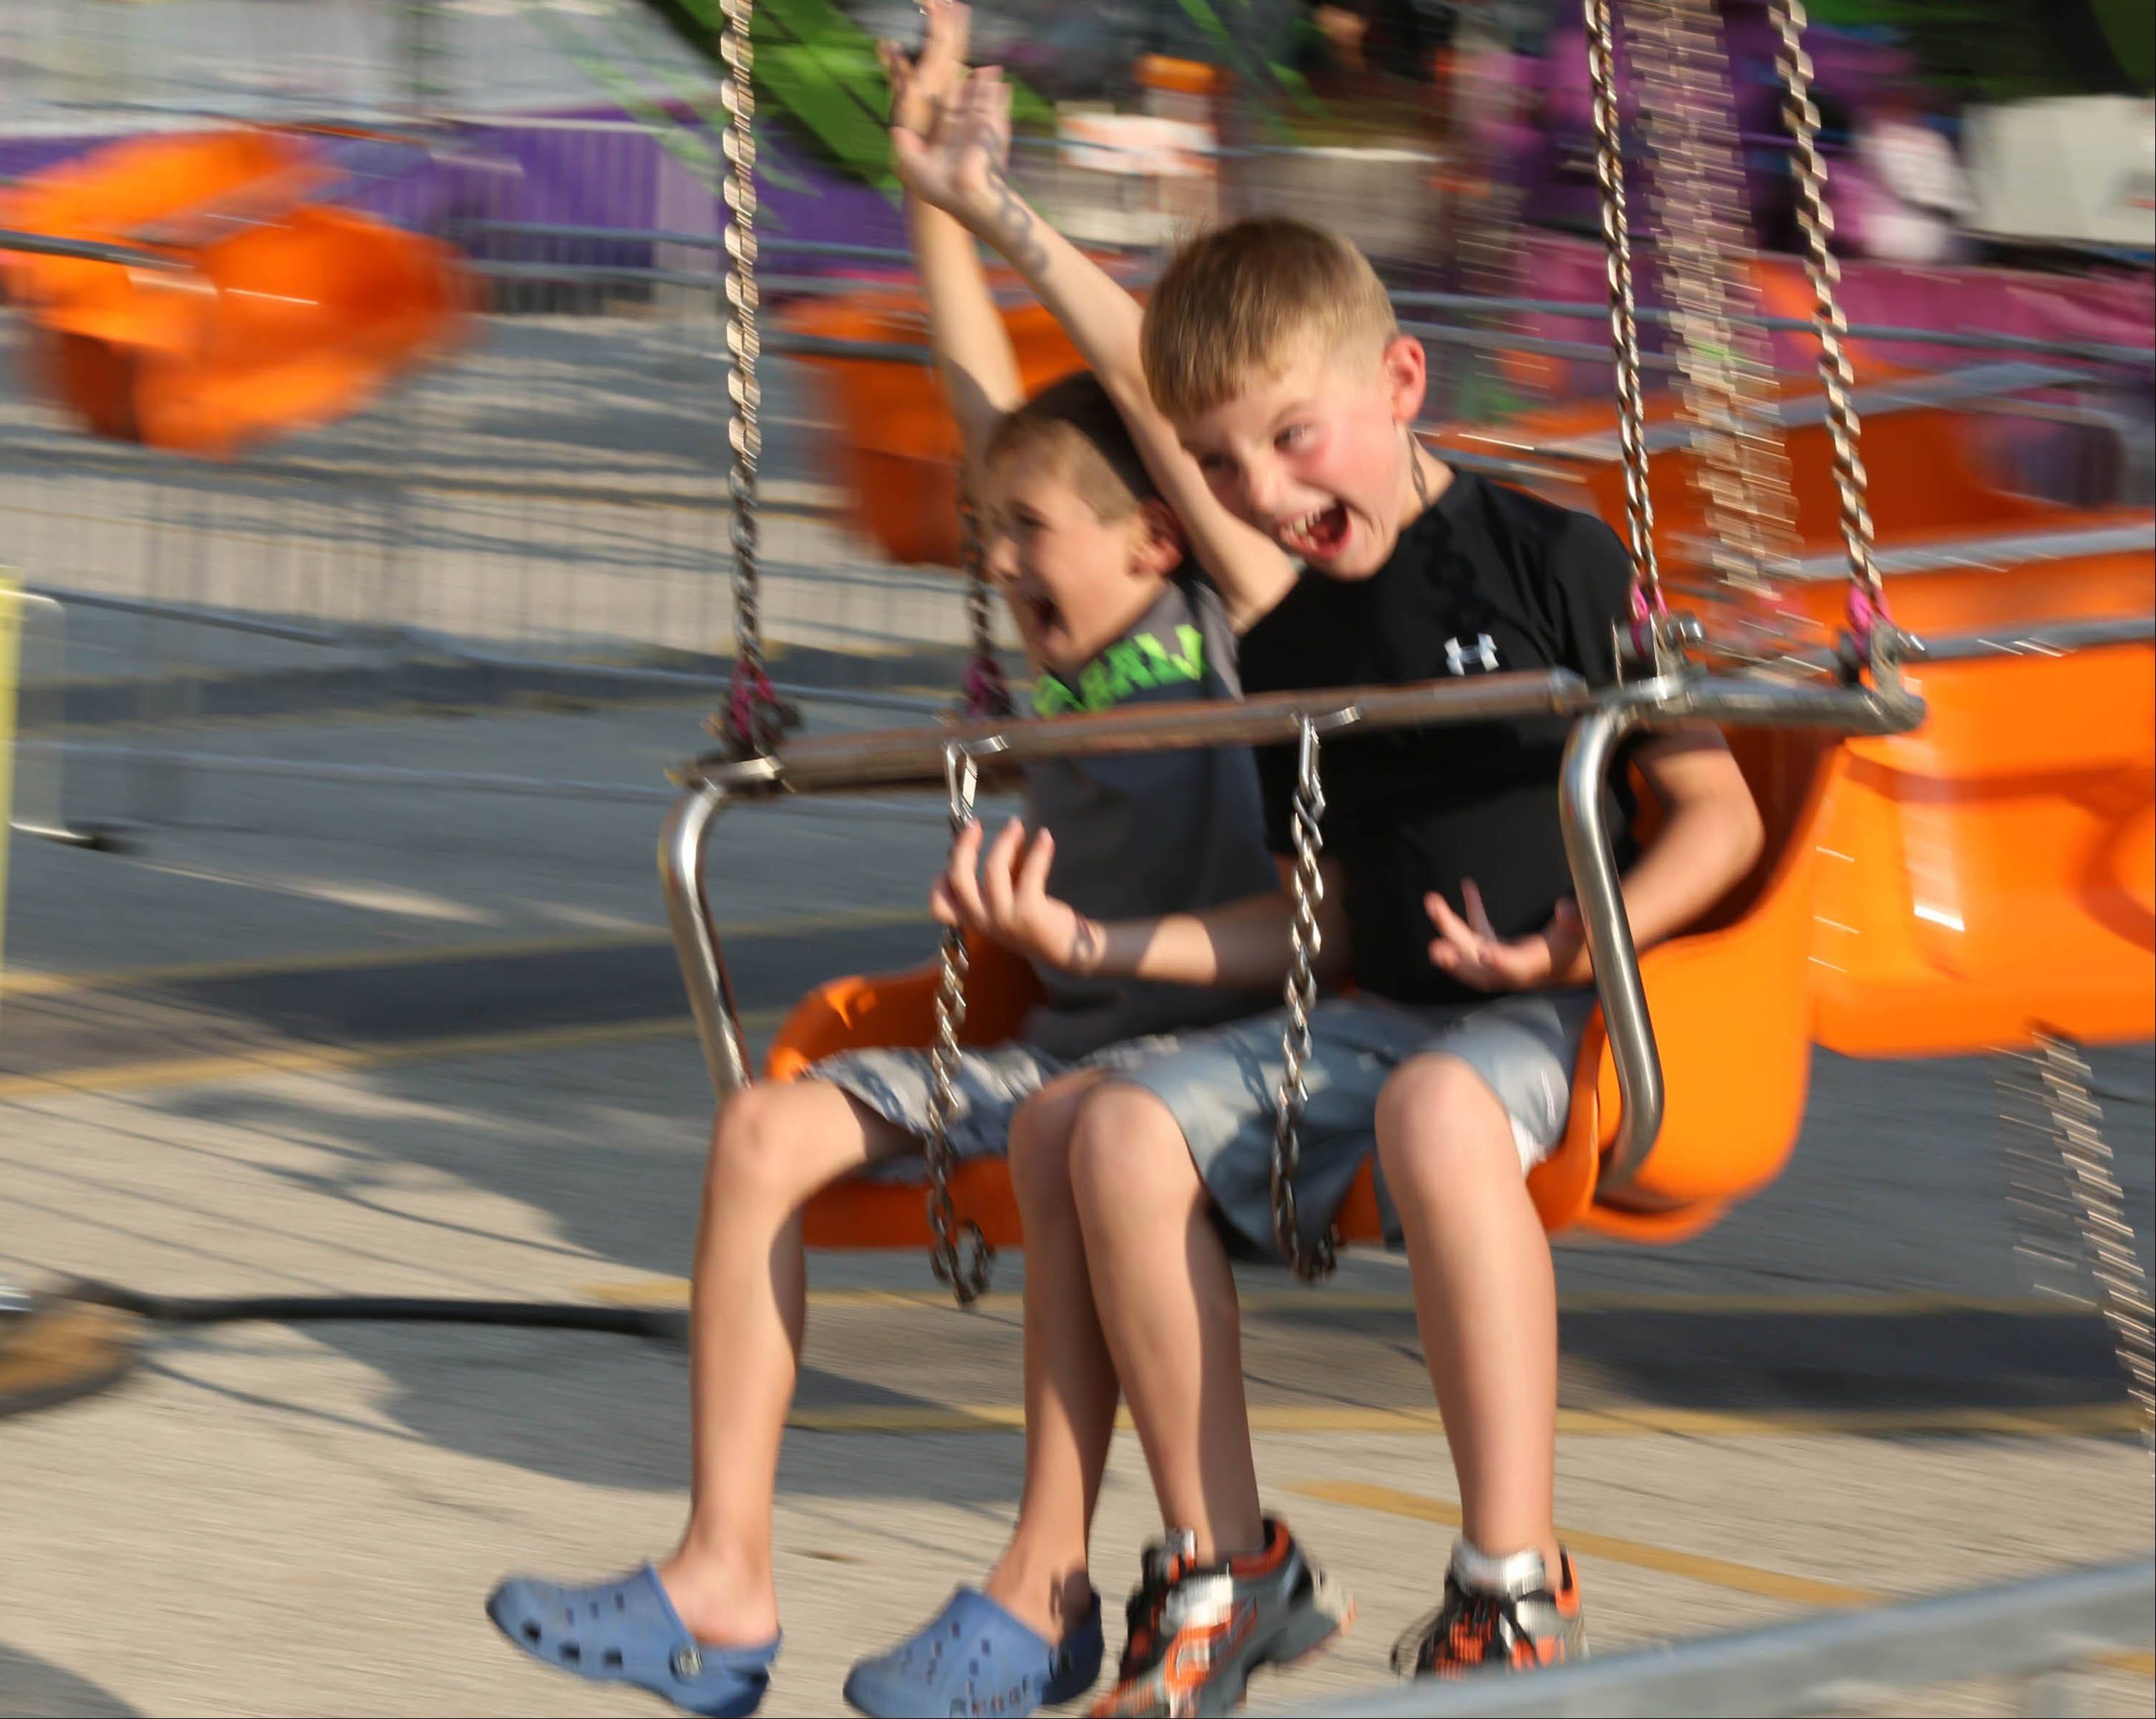 Michael Cruz,6, of Volo and Matthew Kisselburg,8, of Mundelein ride the swing at Mundelein Community Days at Kracklauer Park in Mundelein on Friday.